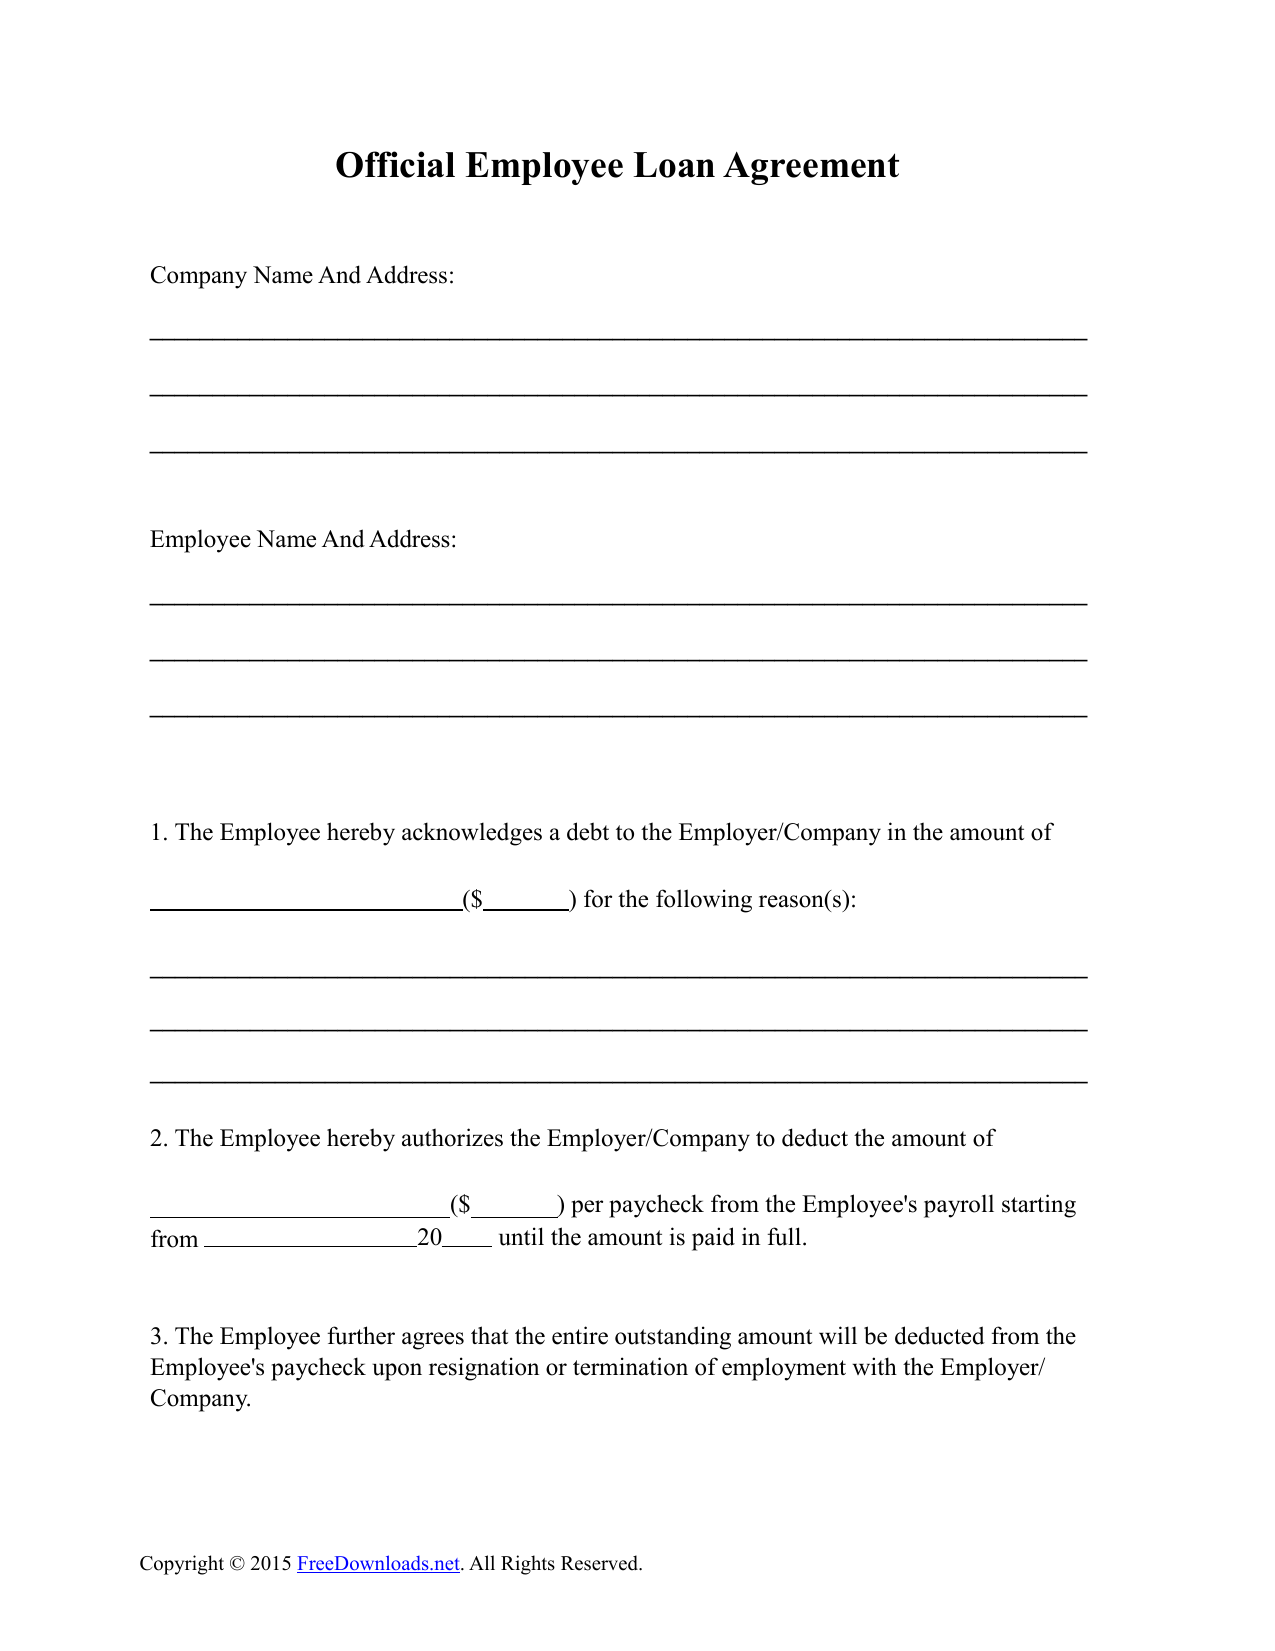 employee loan agreement template